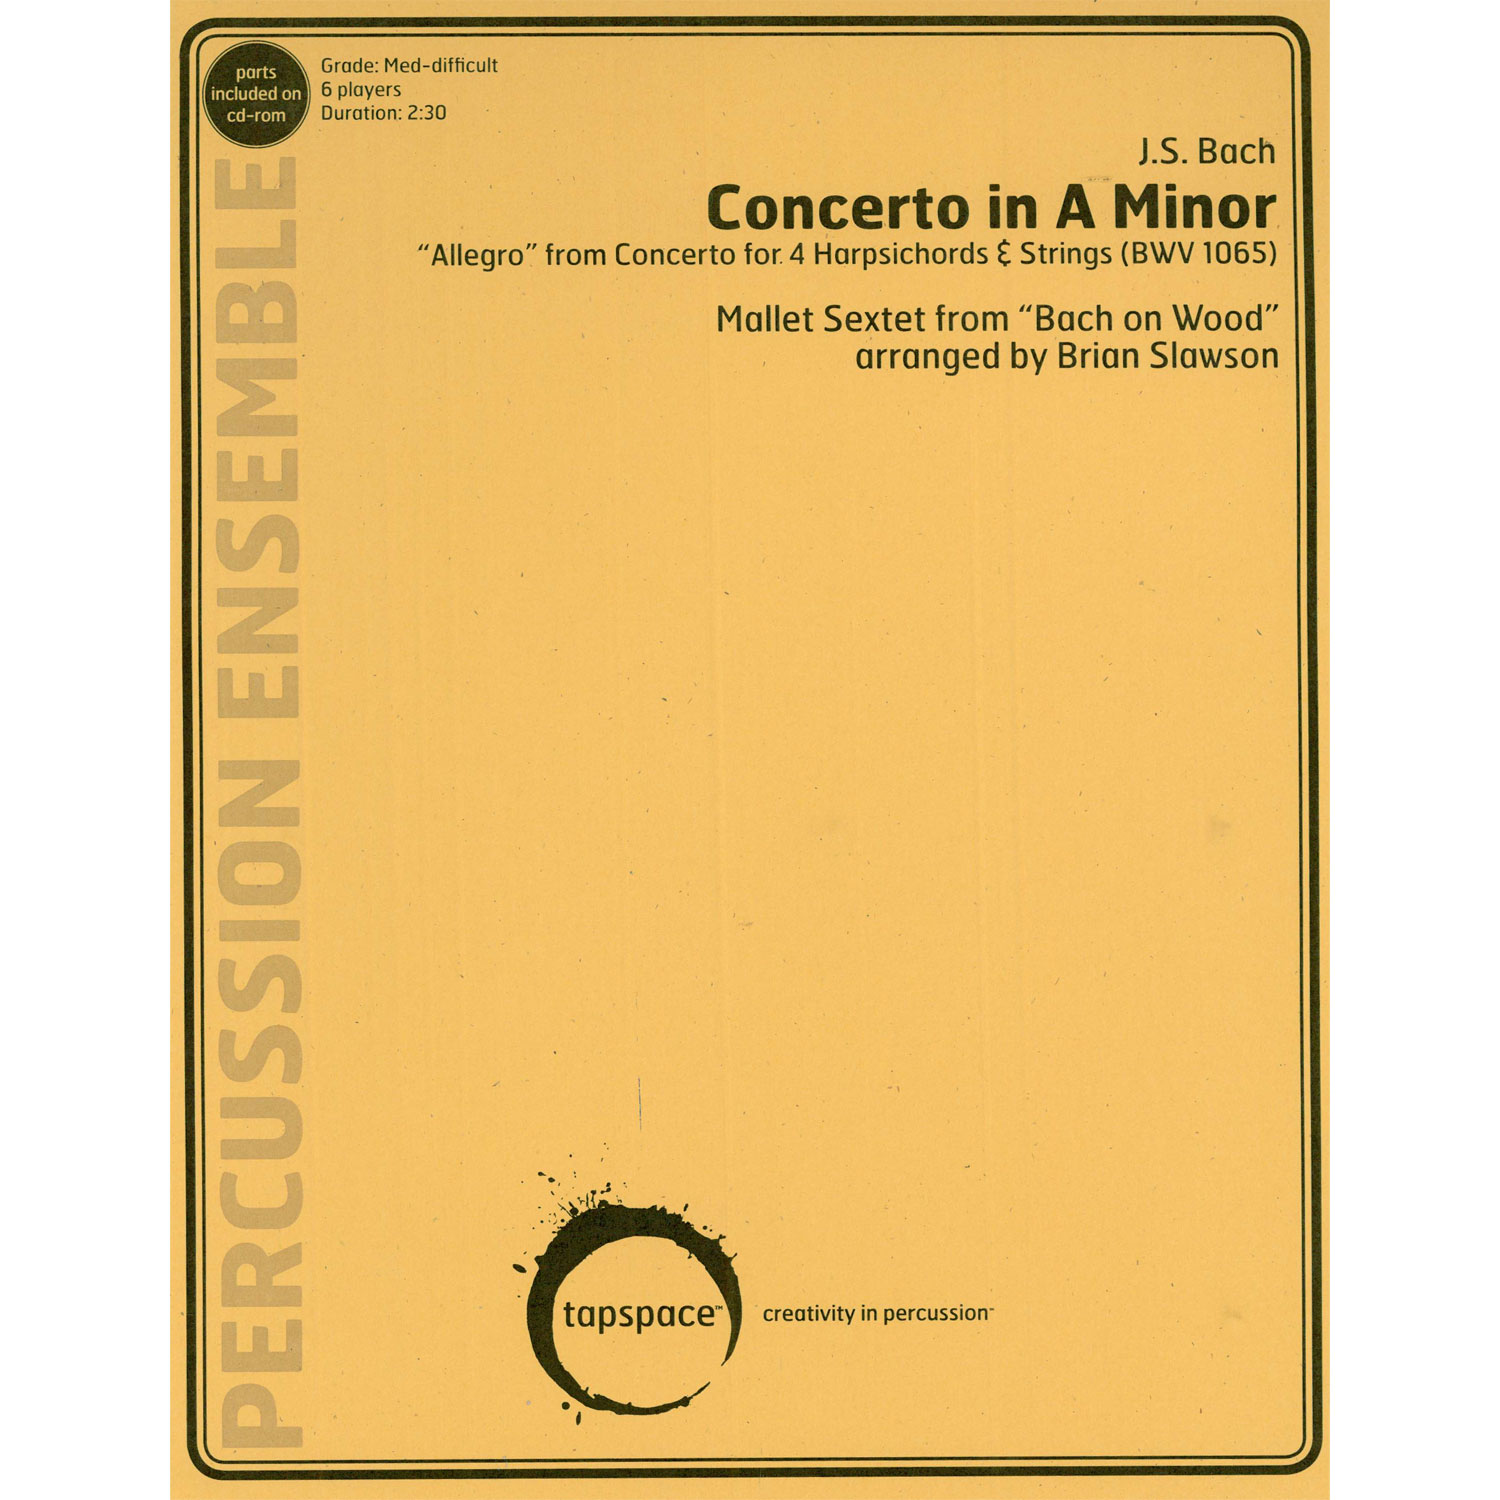 Concerto in A Minor by J. S. Bach arr. Brian Slawson